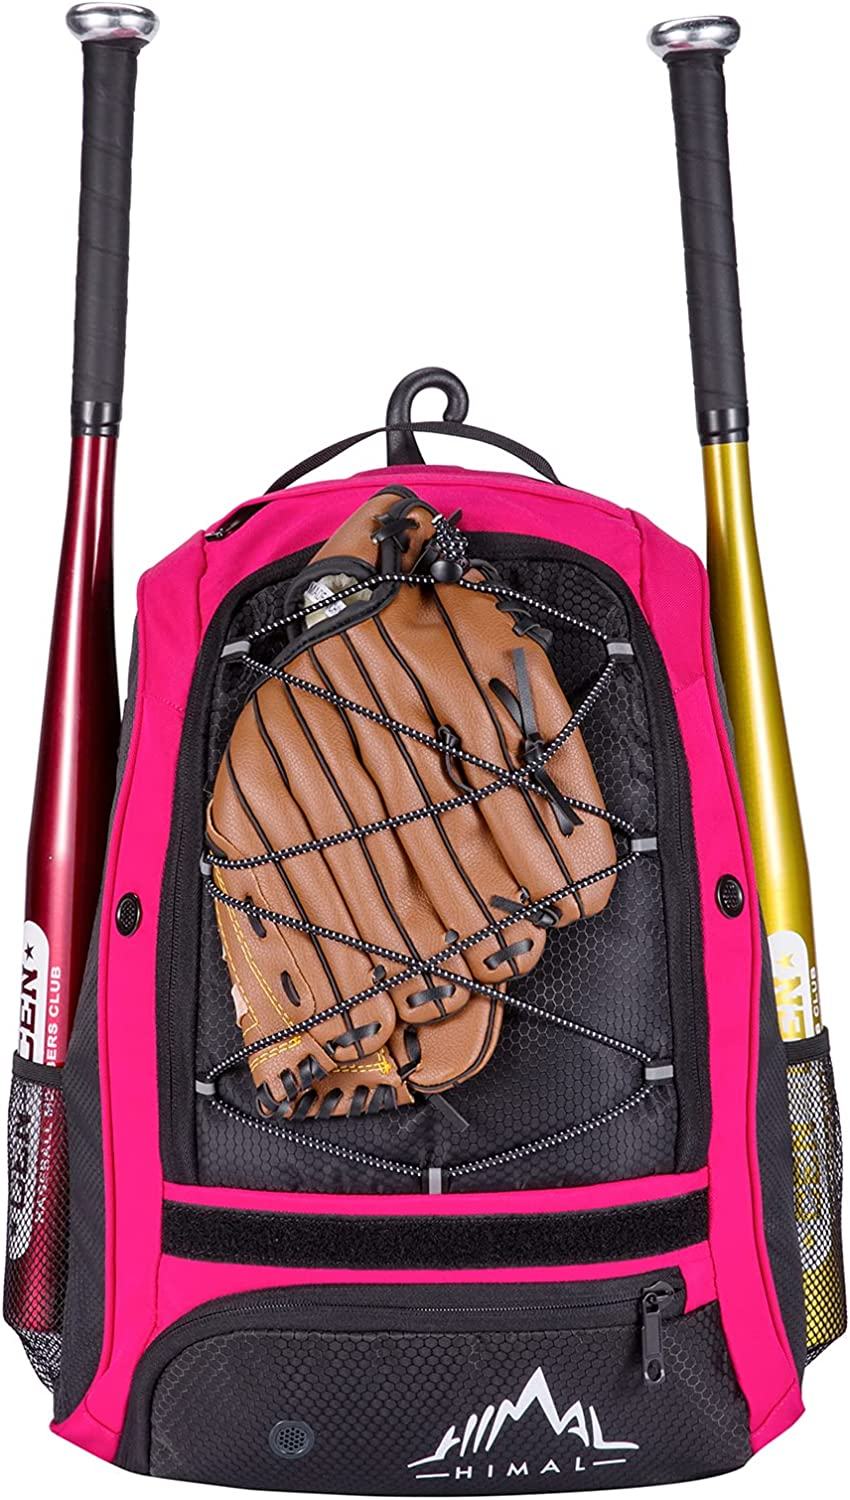 Himal specialty shop Outdoors Baseball Bag - Bat online shopping Backpack for T-Ball